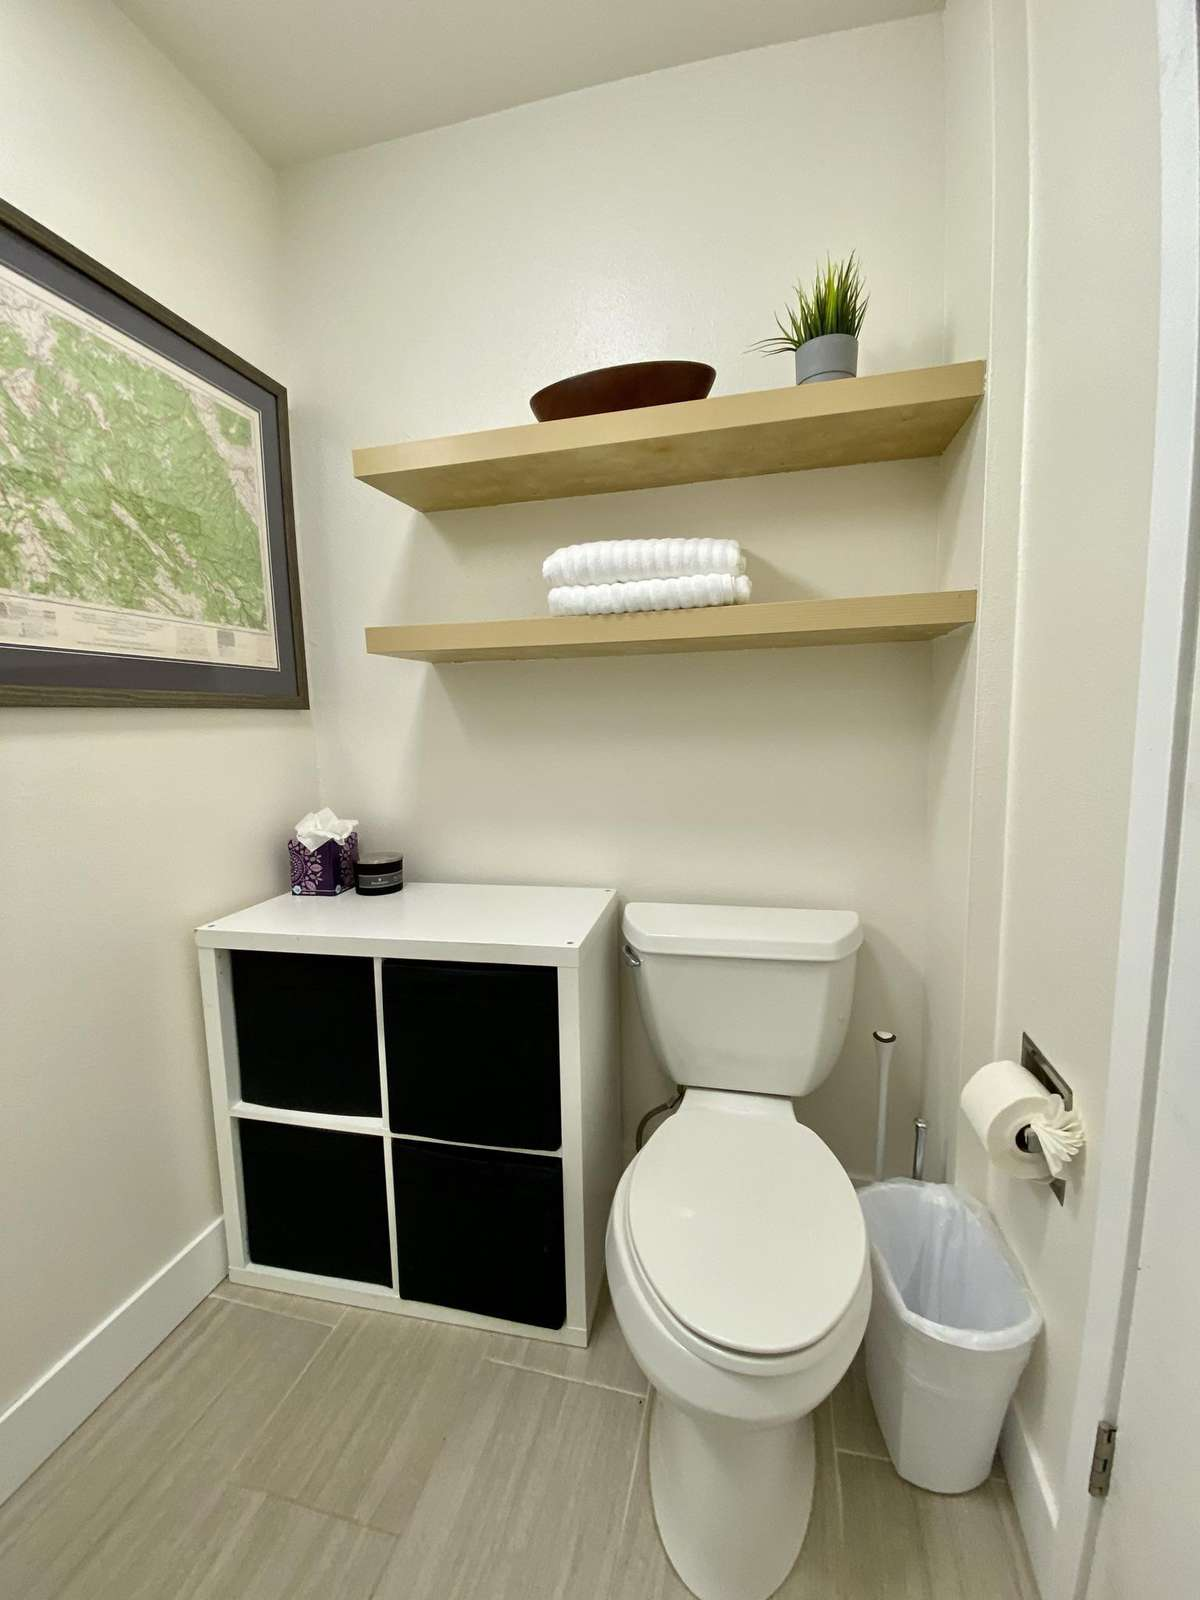 Toilet and bathroom storage space